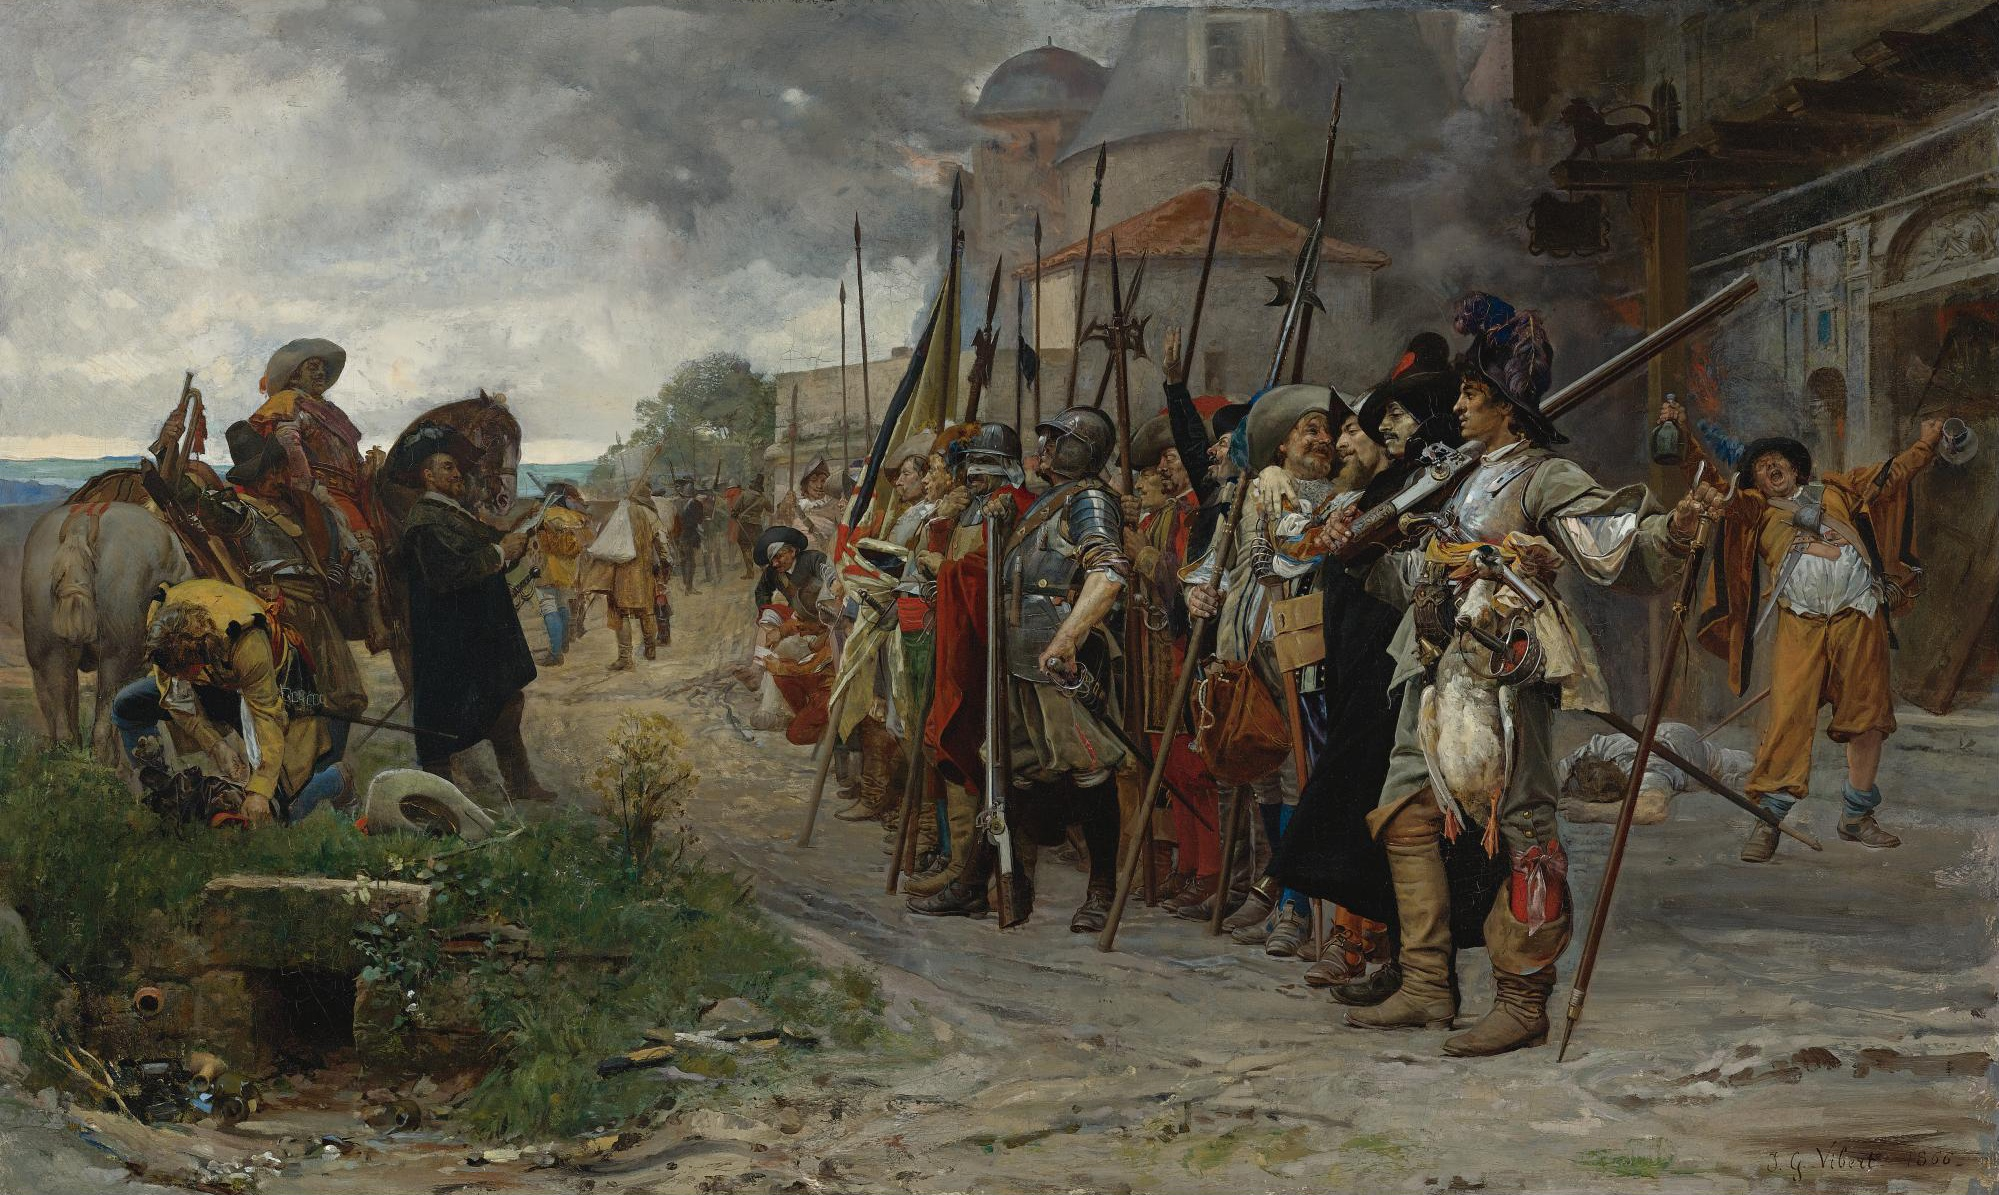 Jehan-Georges_Vibert_-_L'appel_après_le_pillage_(1866)